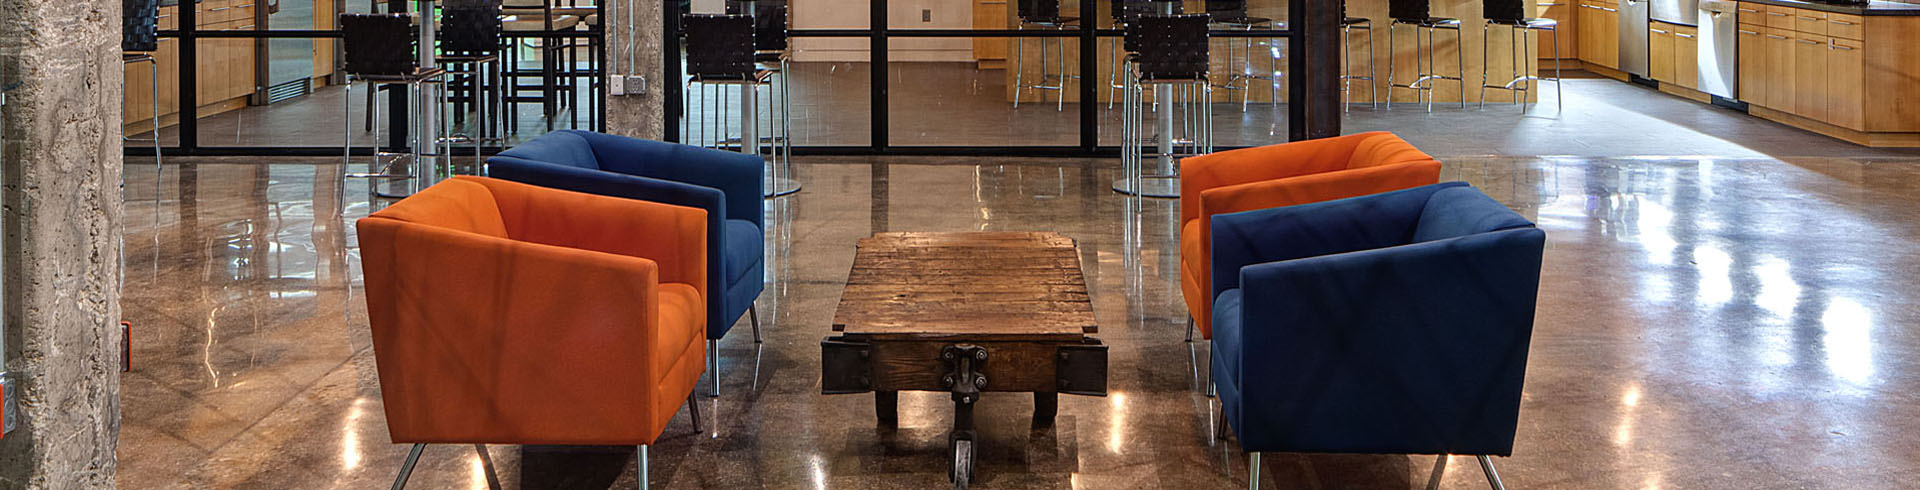 Merveilleux Everything For Offices | New U0026 Used Office Furniture In Denver And Aurora,  Colorado